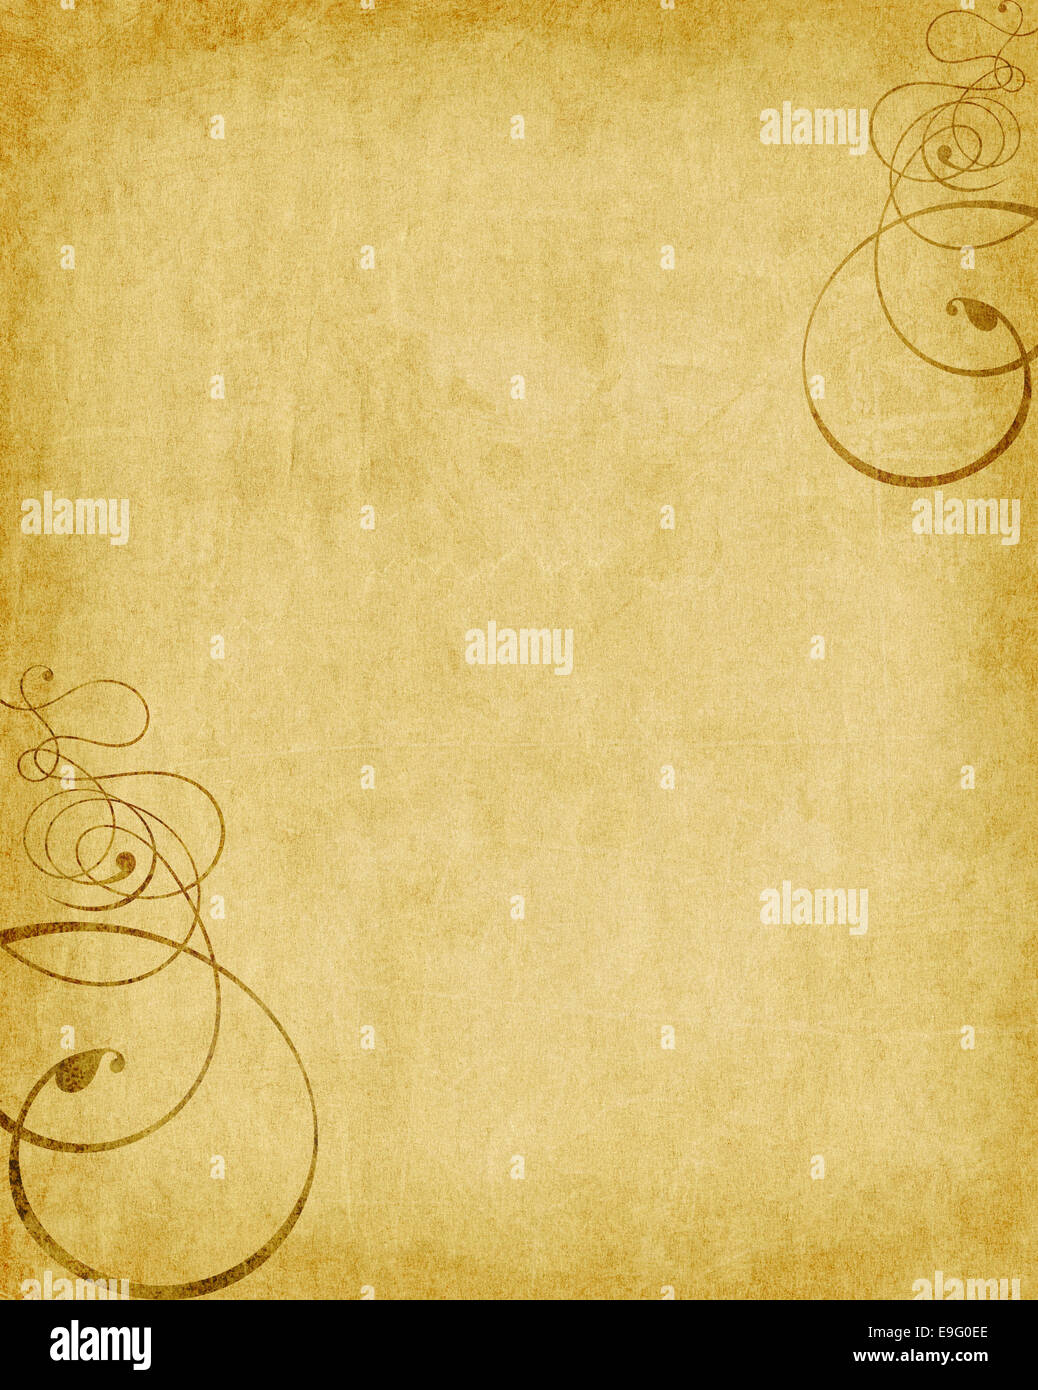 old paper texture with added swirls - Stock Image